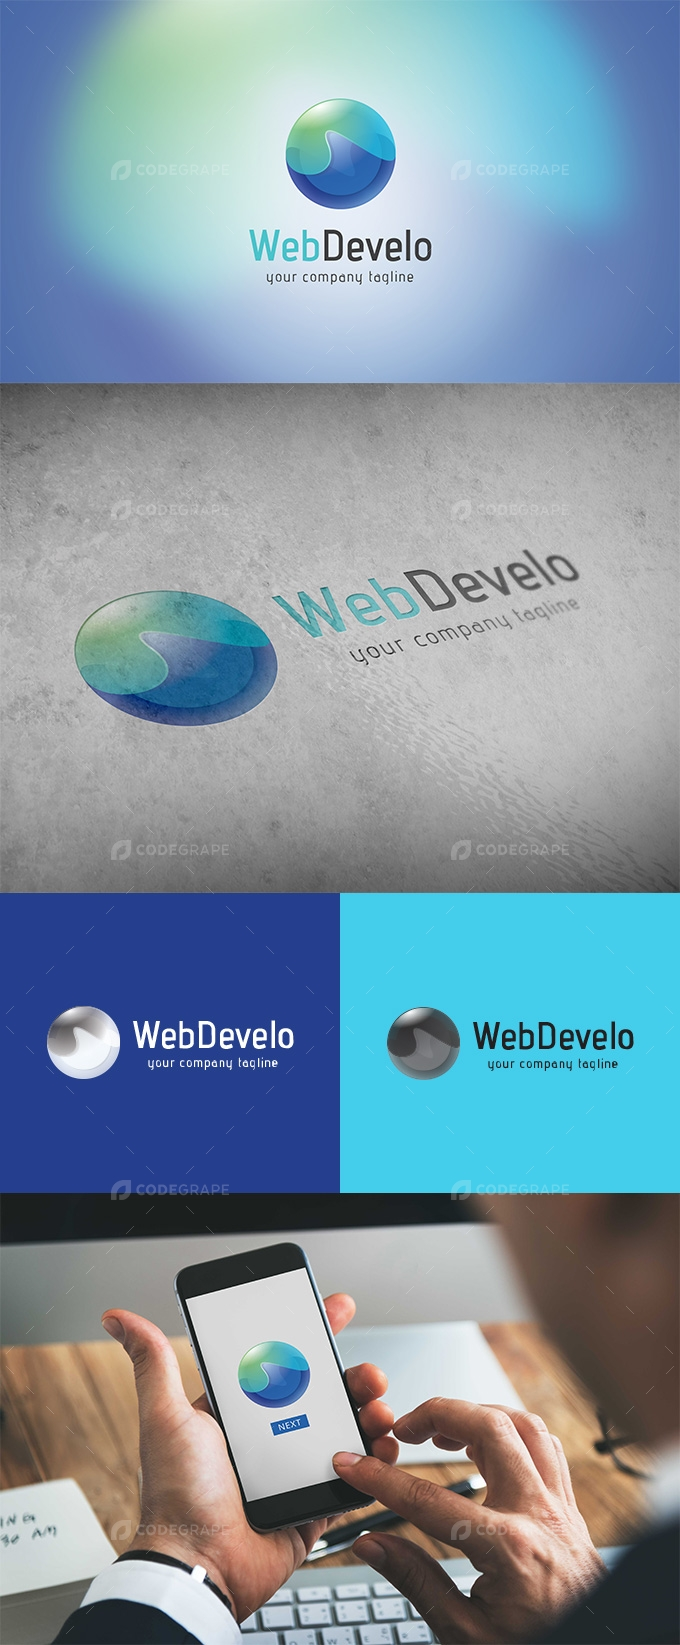 WebDevelo Developer Logo